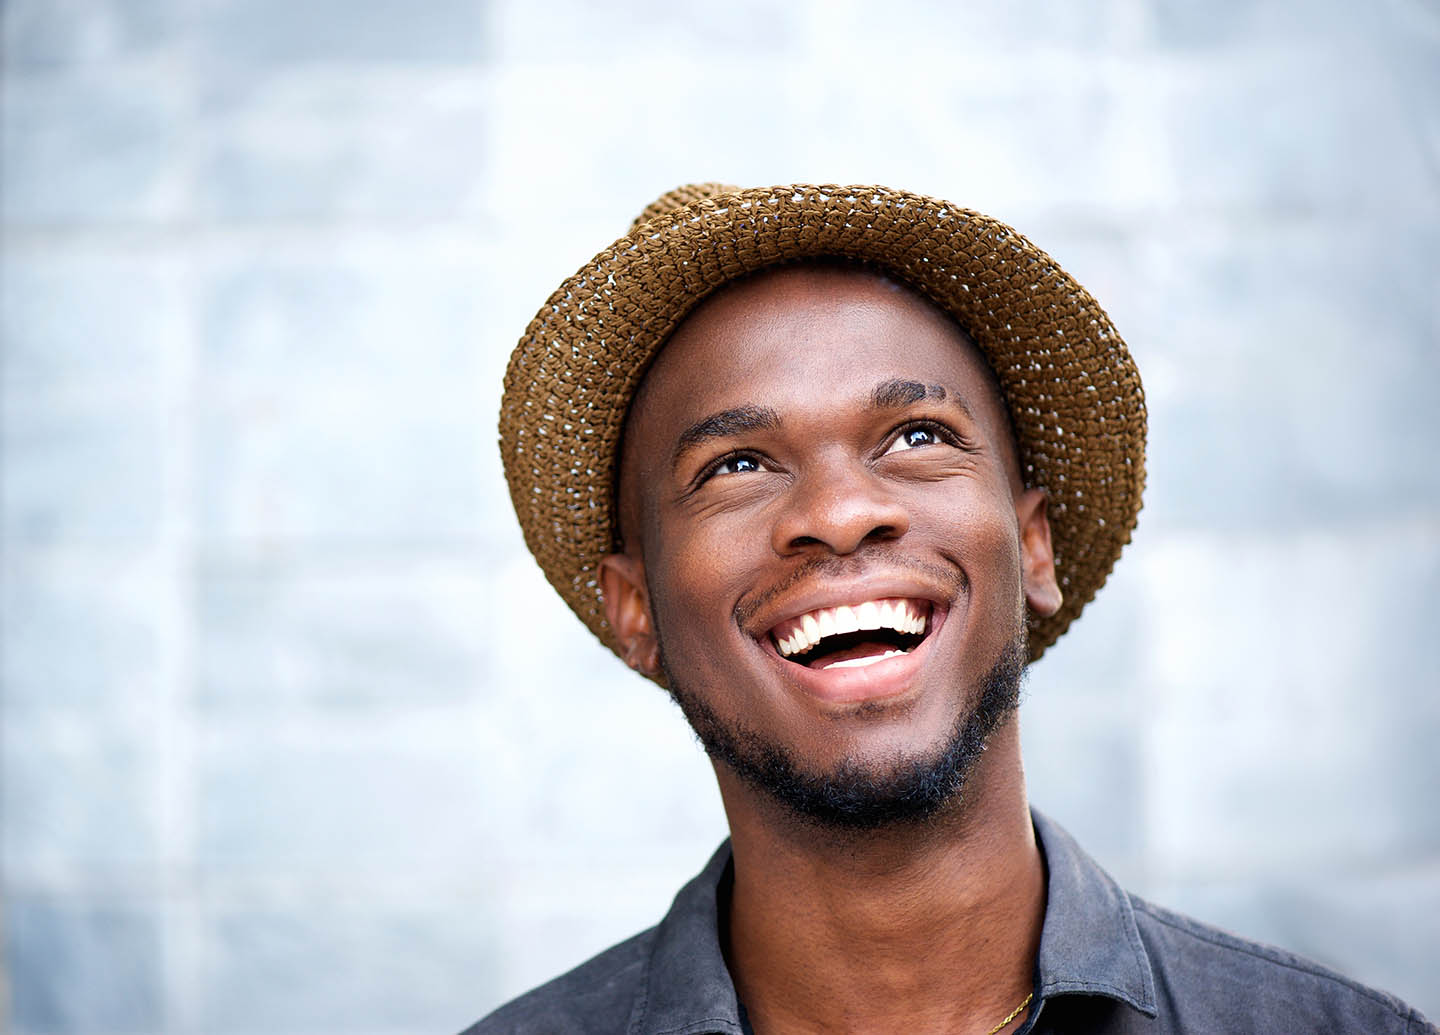 Man in a hat smiling upwards